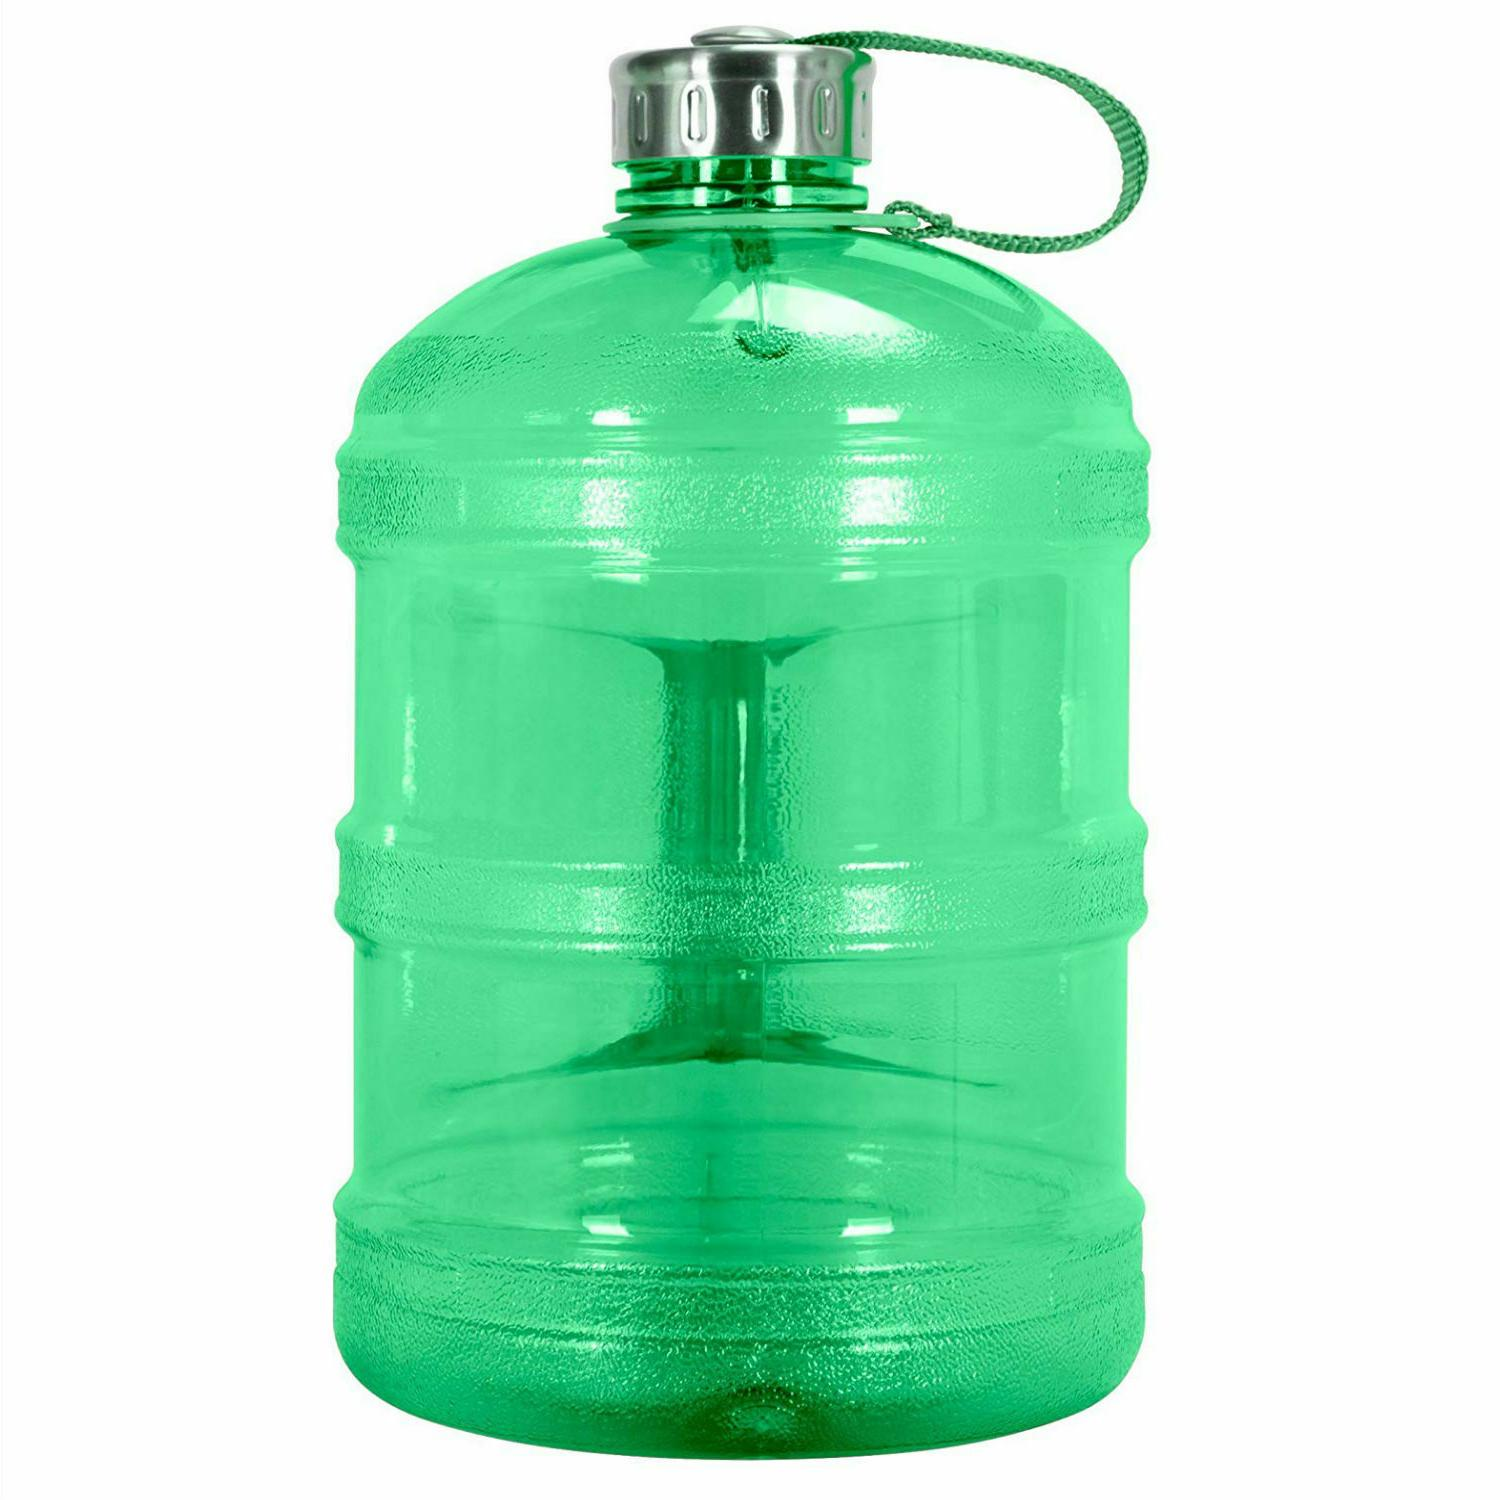 1-Gallon Reusable Jug BPA Stainless Steel Cap